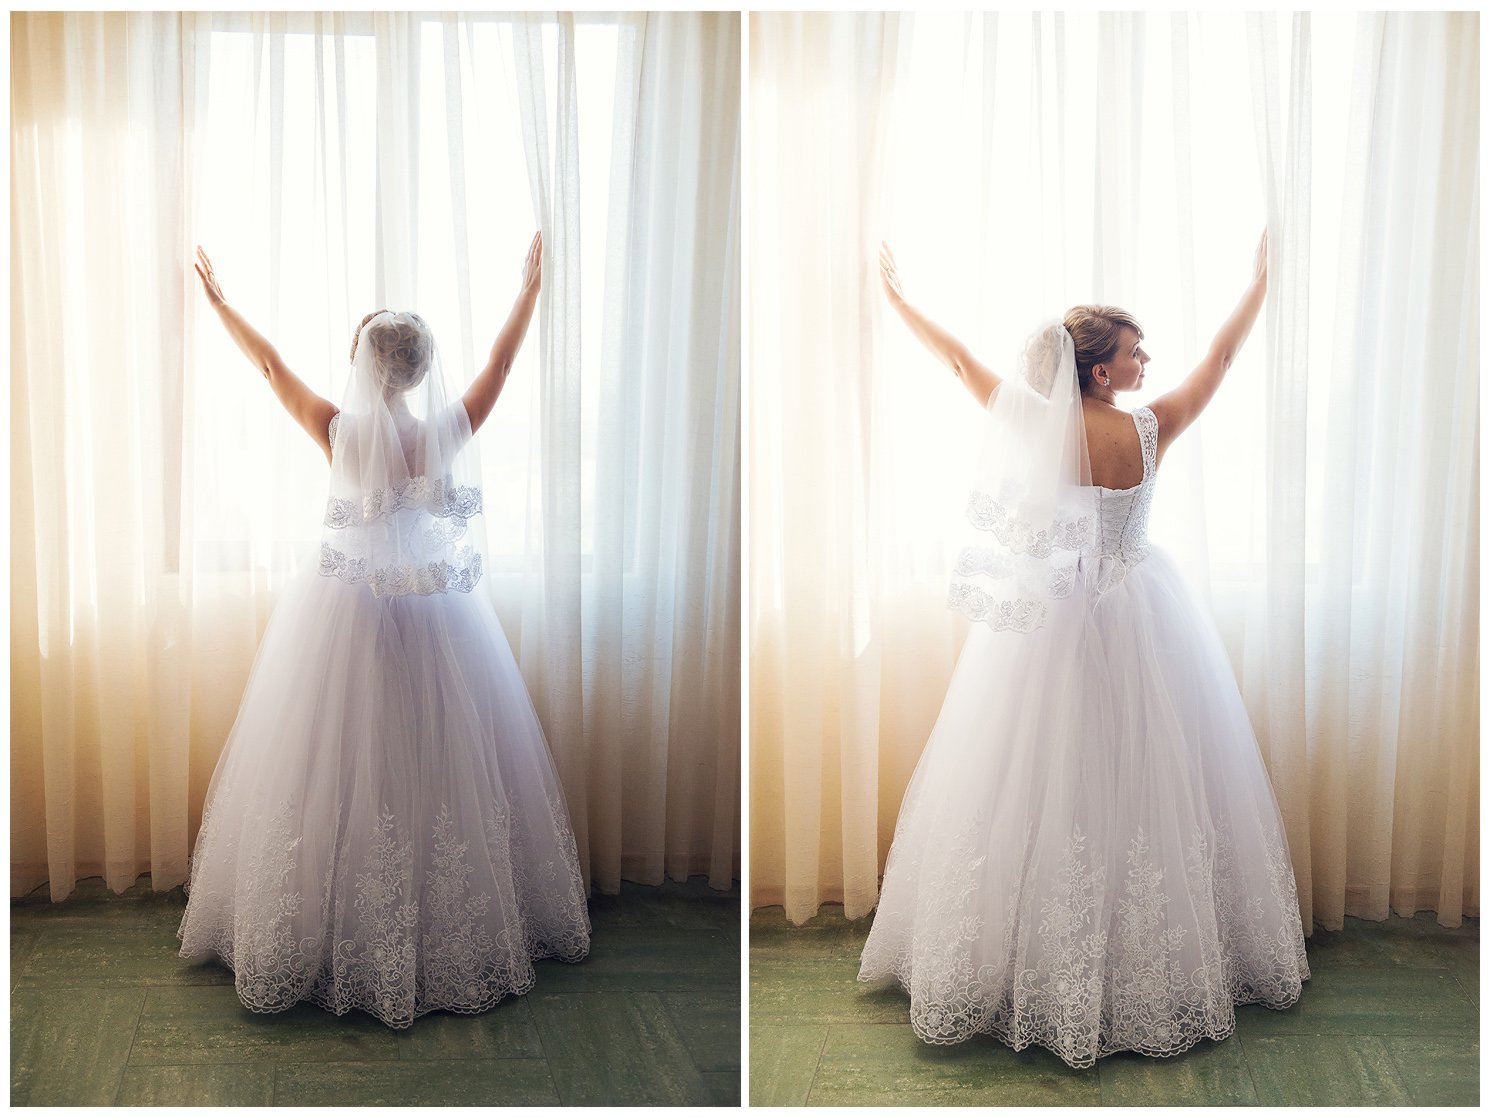 Bride in her wedding dress in front of a window